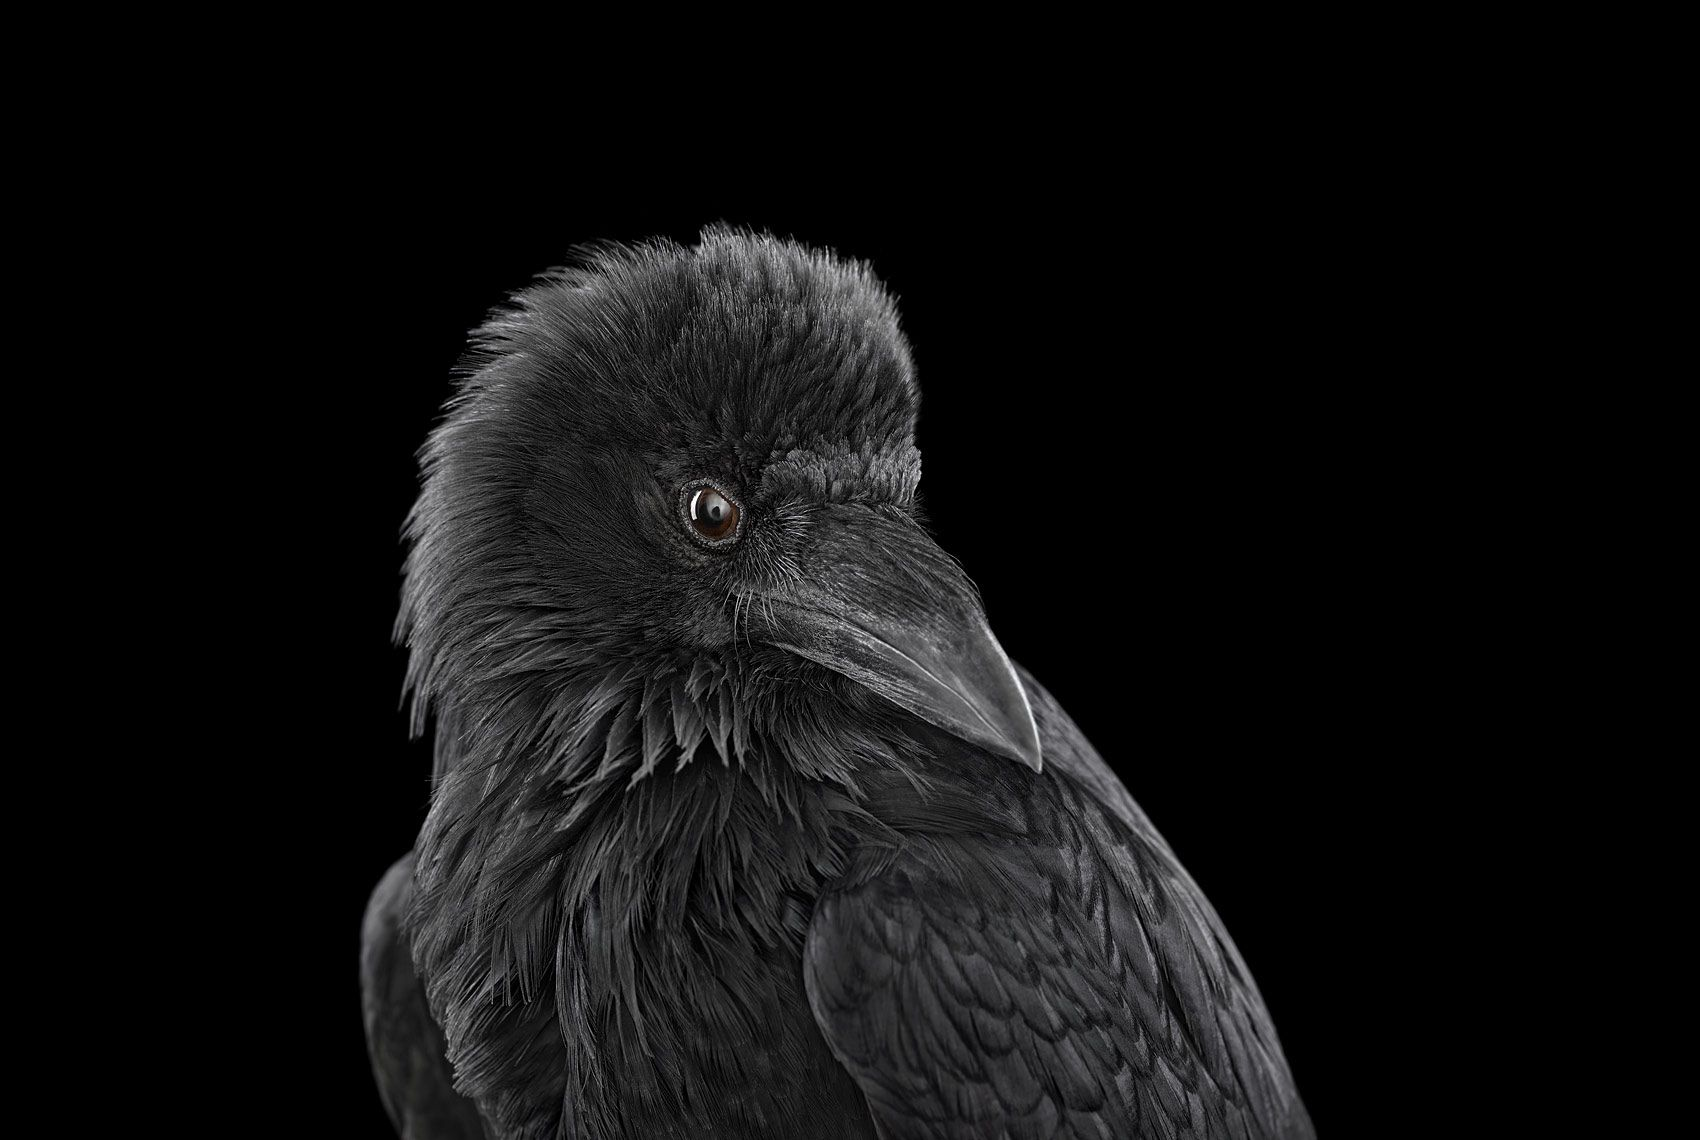 Raven #2, Albuquerque, NM, 2013,Brad Wilson,Photography